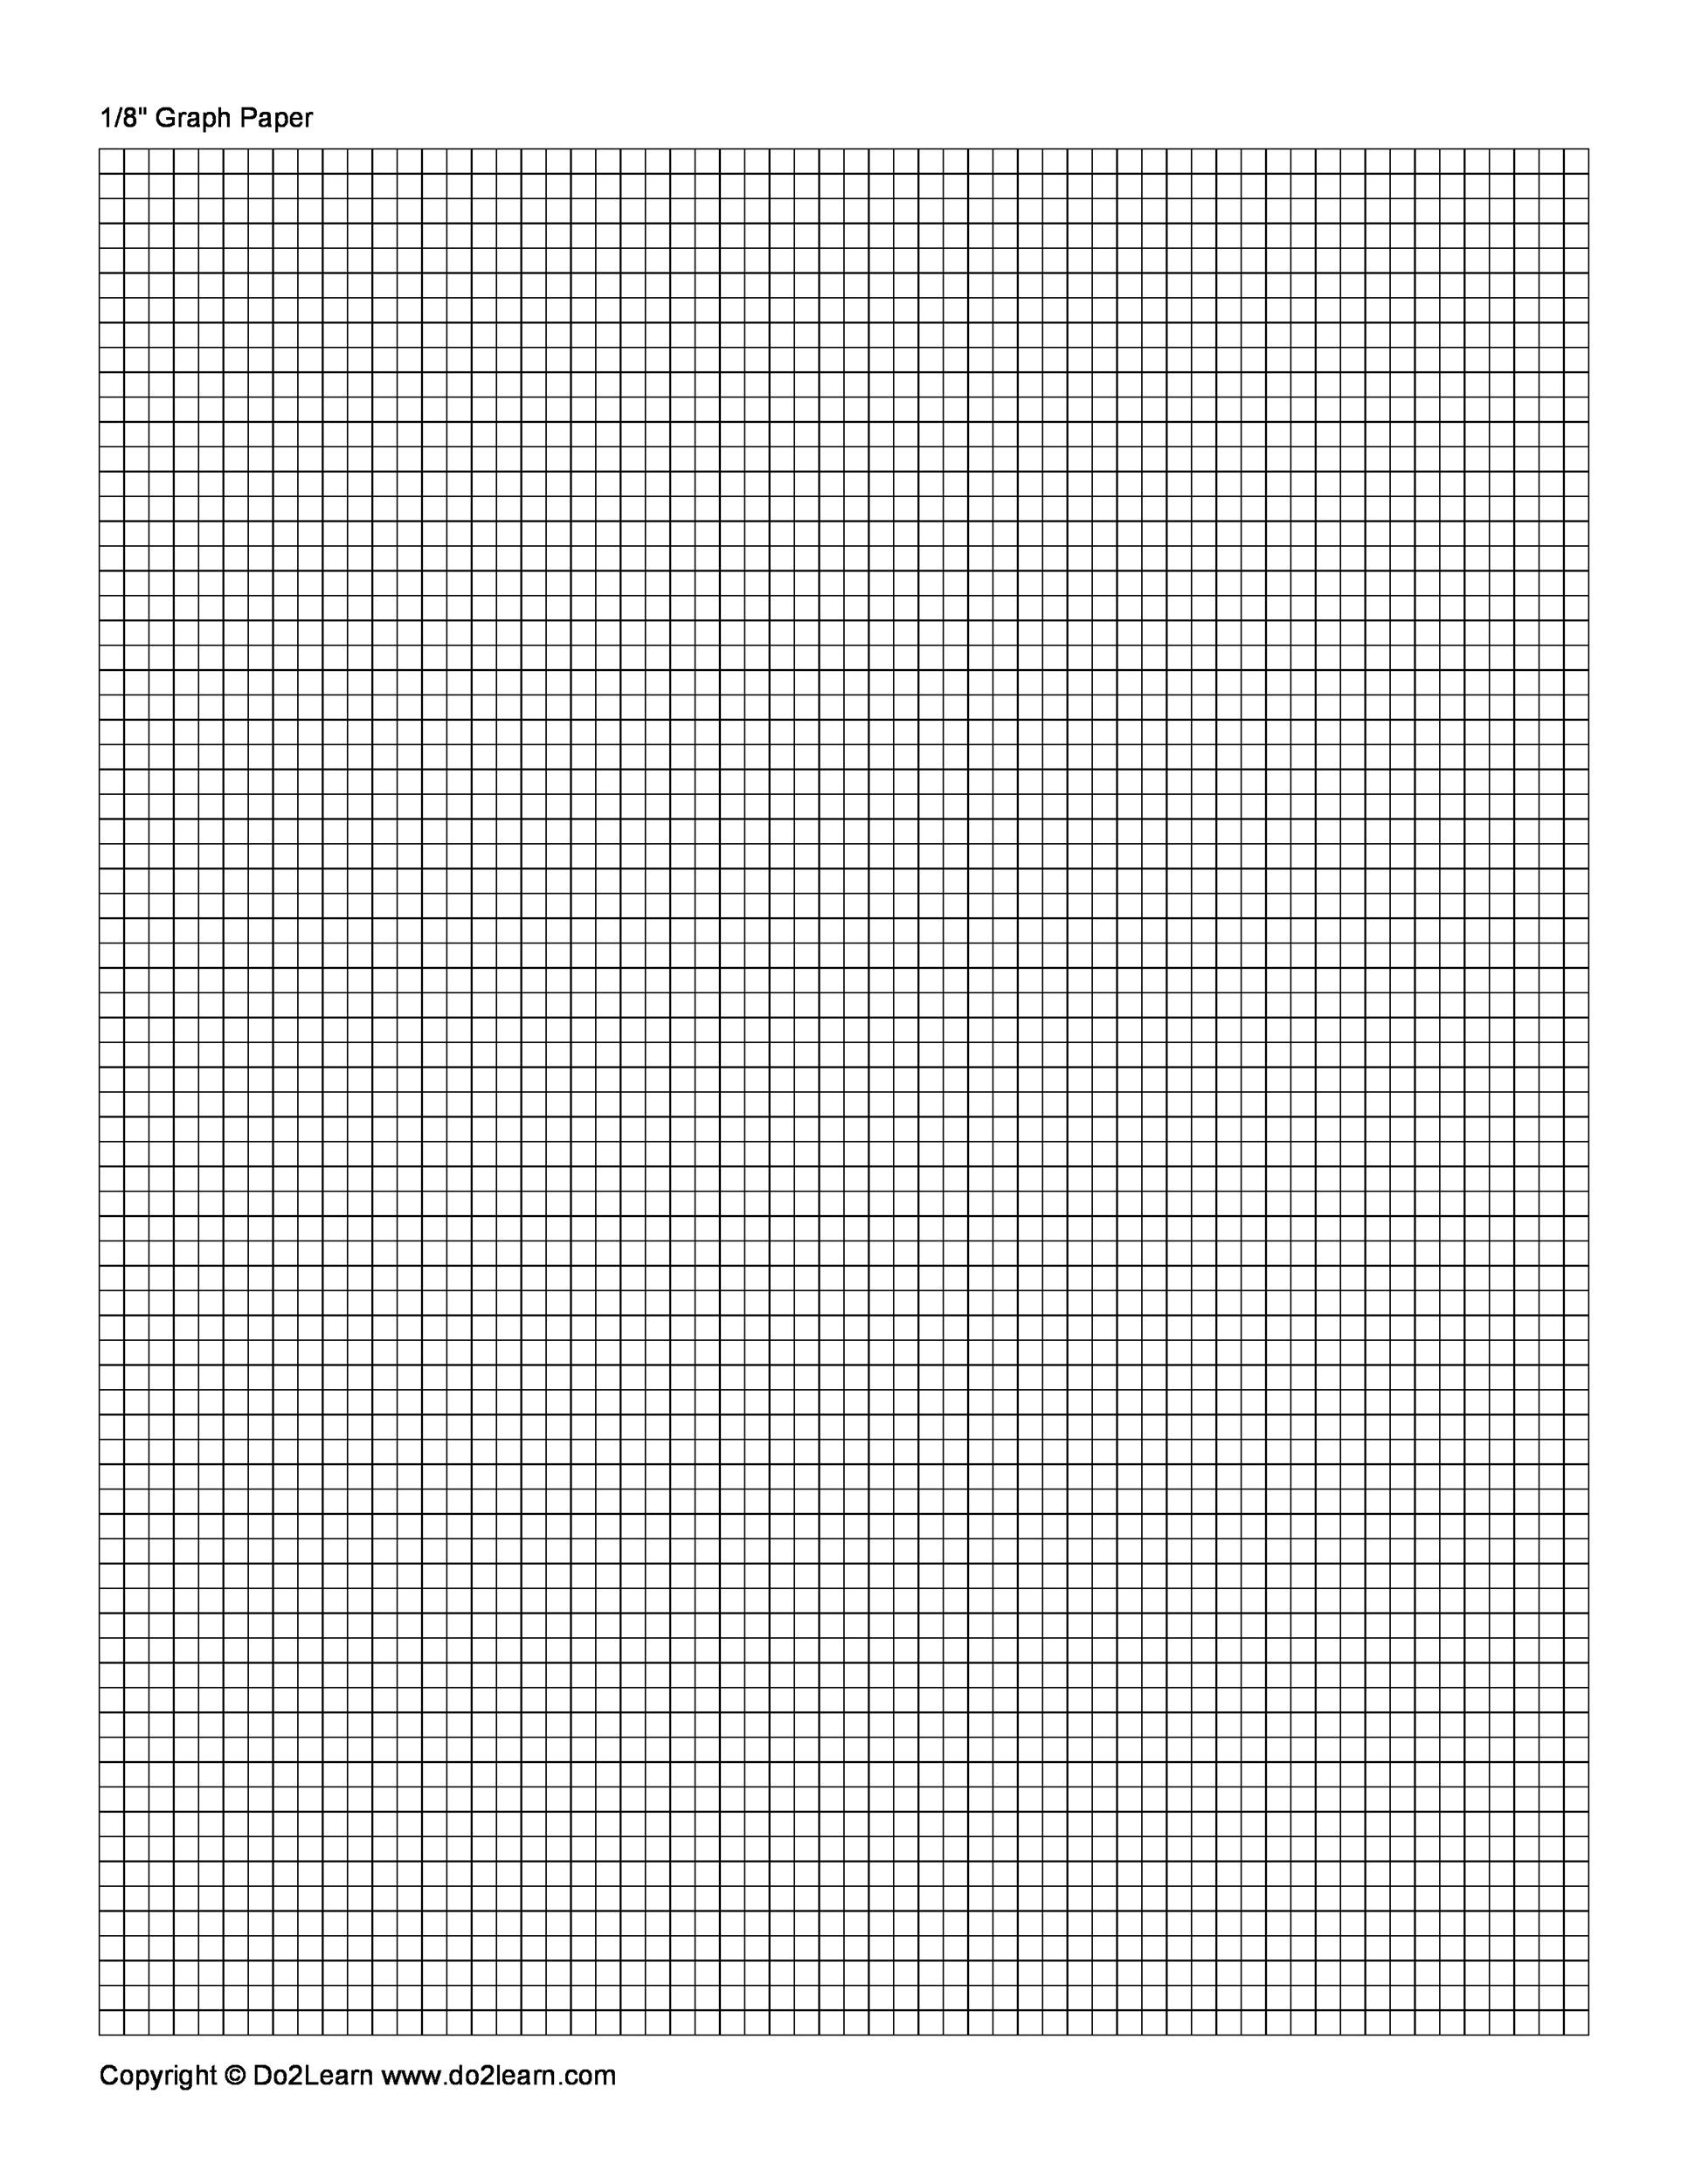 Printable Graph Paper Template 01  Making Graph Paper In Word